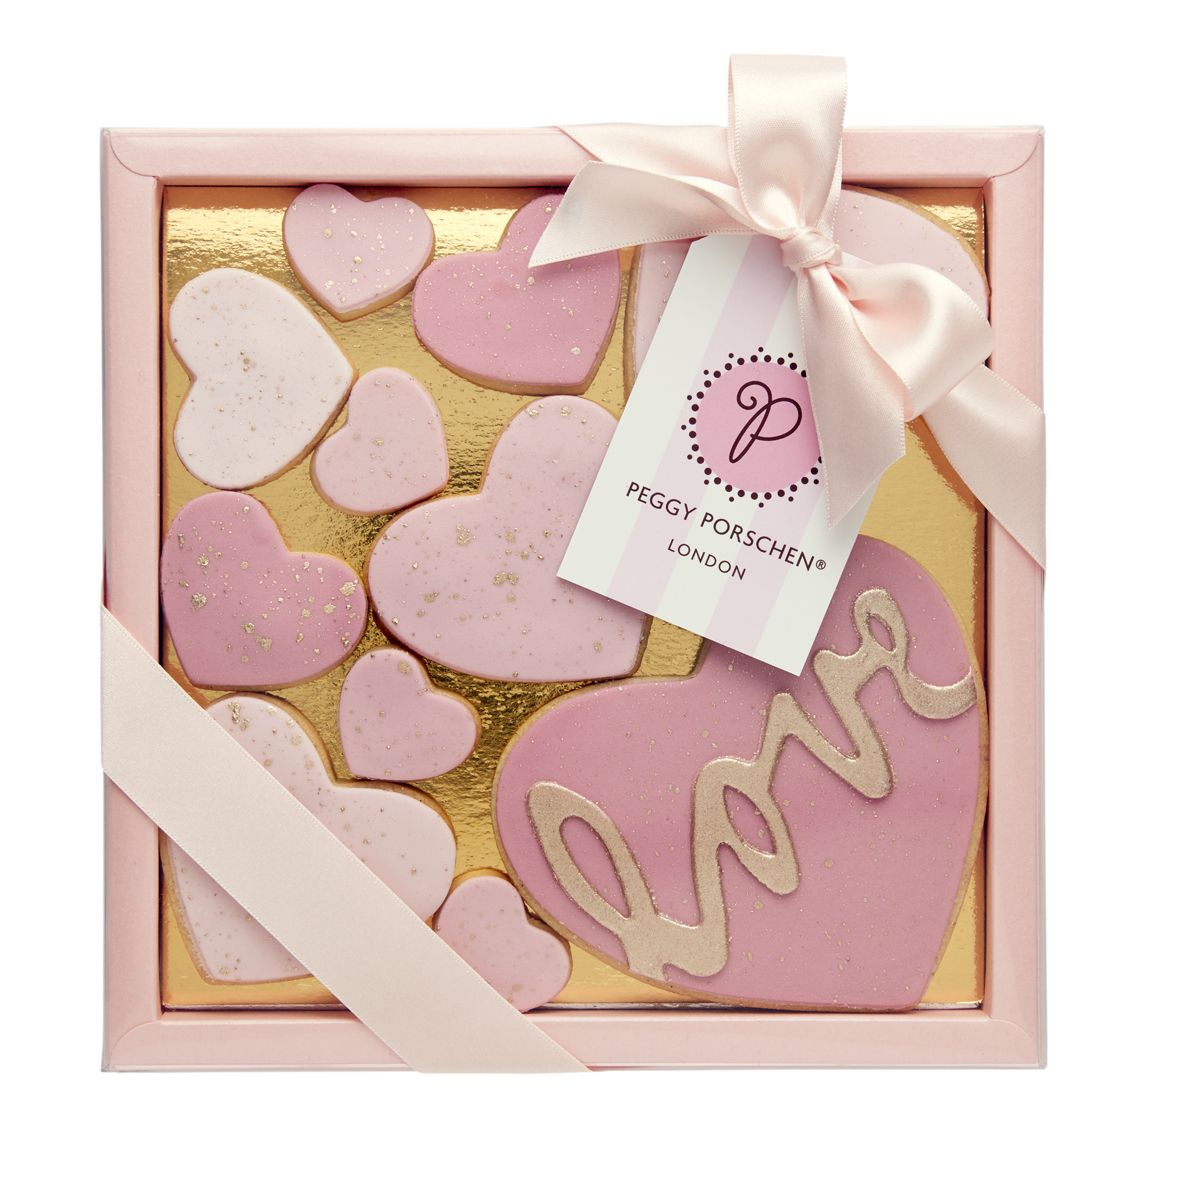 Peggy Porsche - Love Heart Cookie Box - Large | Cookie Inspirations ...